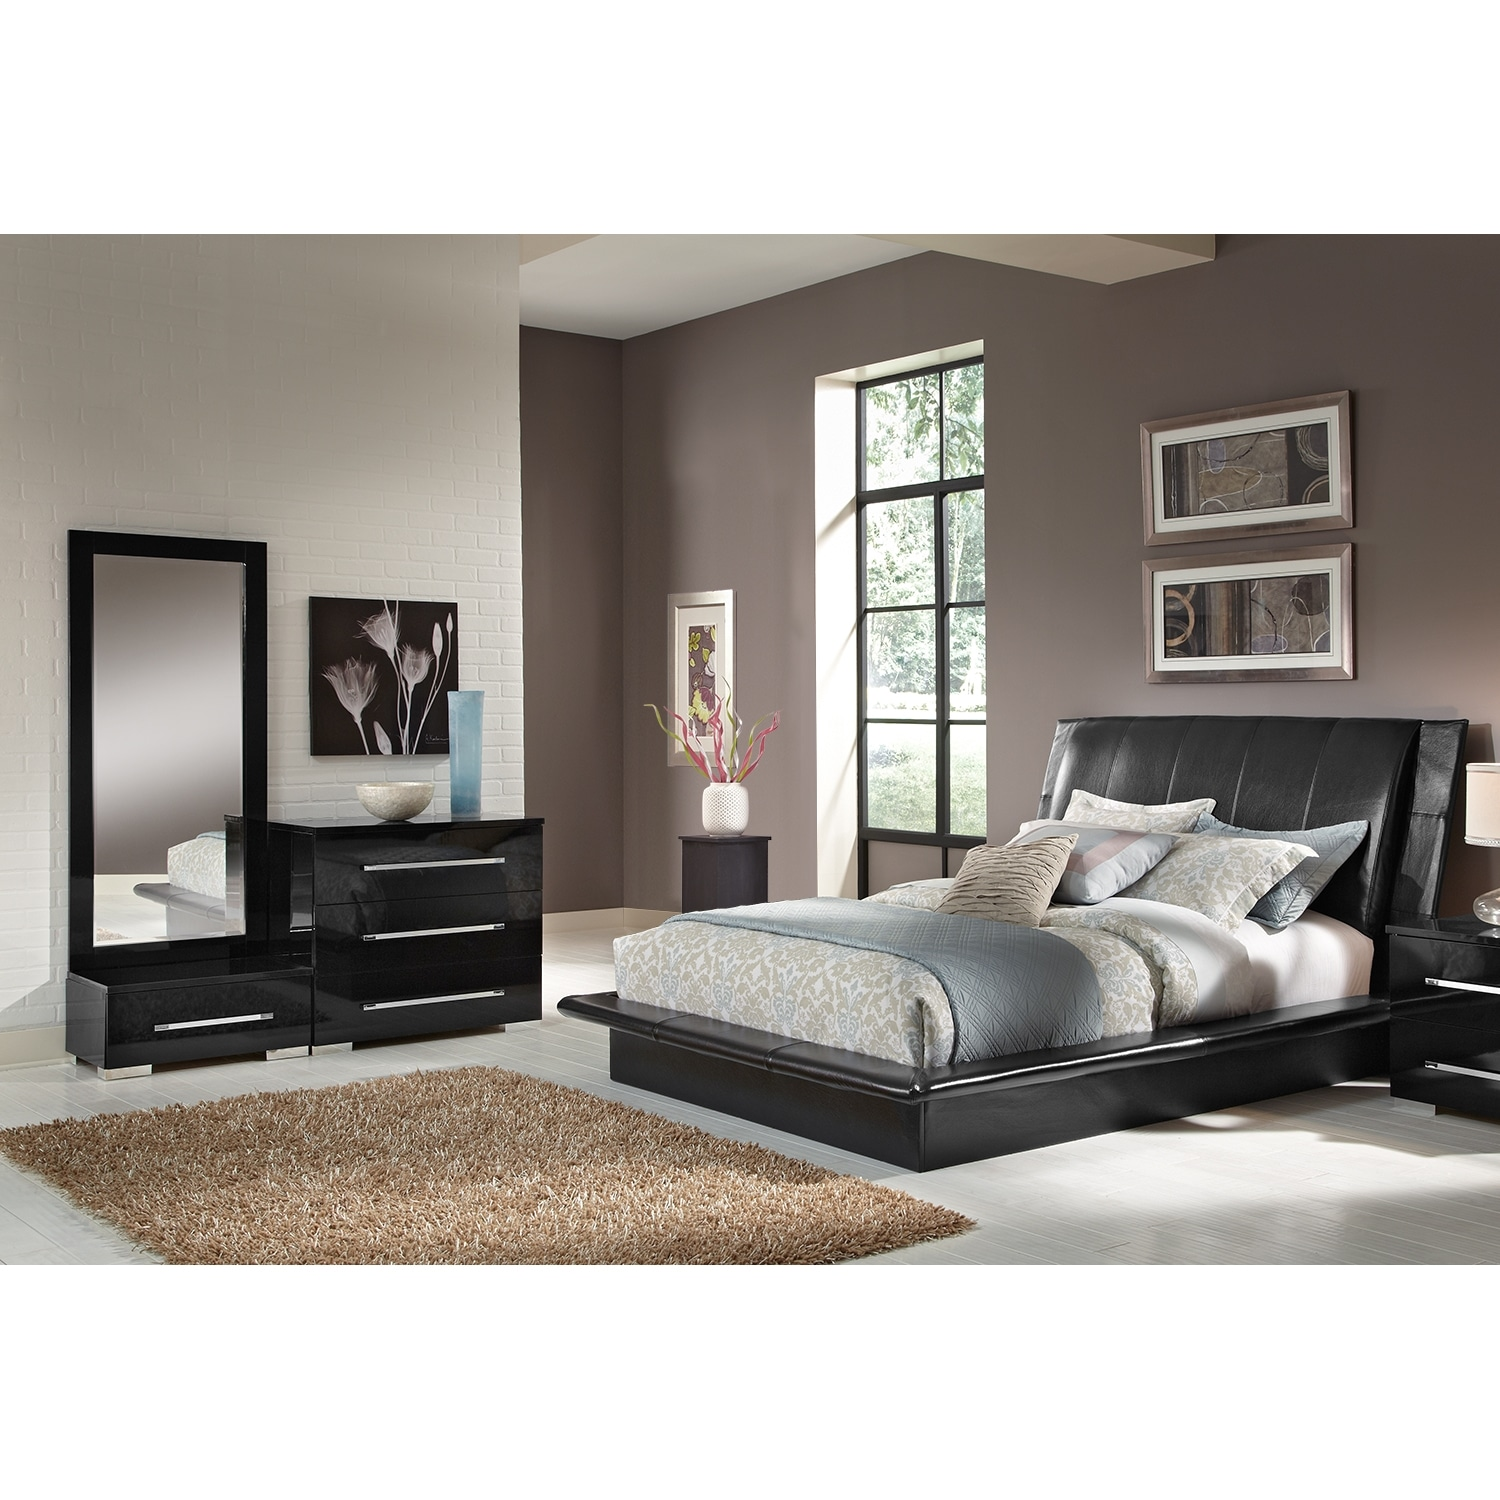 Dimora 5 piece queen upholstered bedroom set black - Black queen bedroom furniture set ...